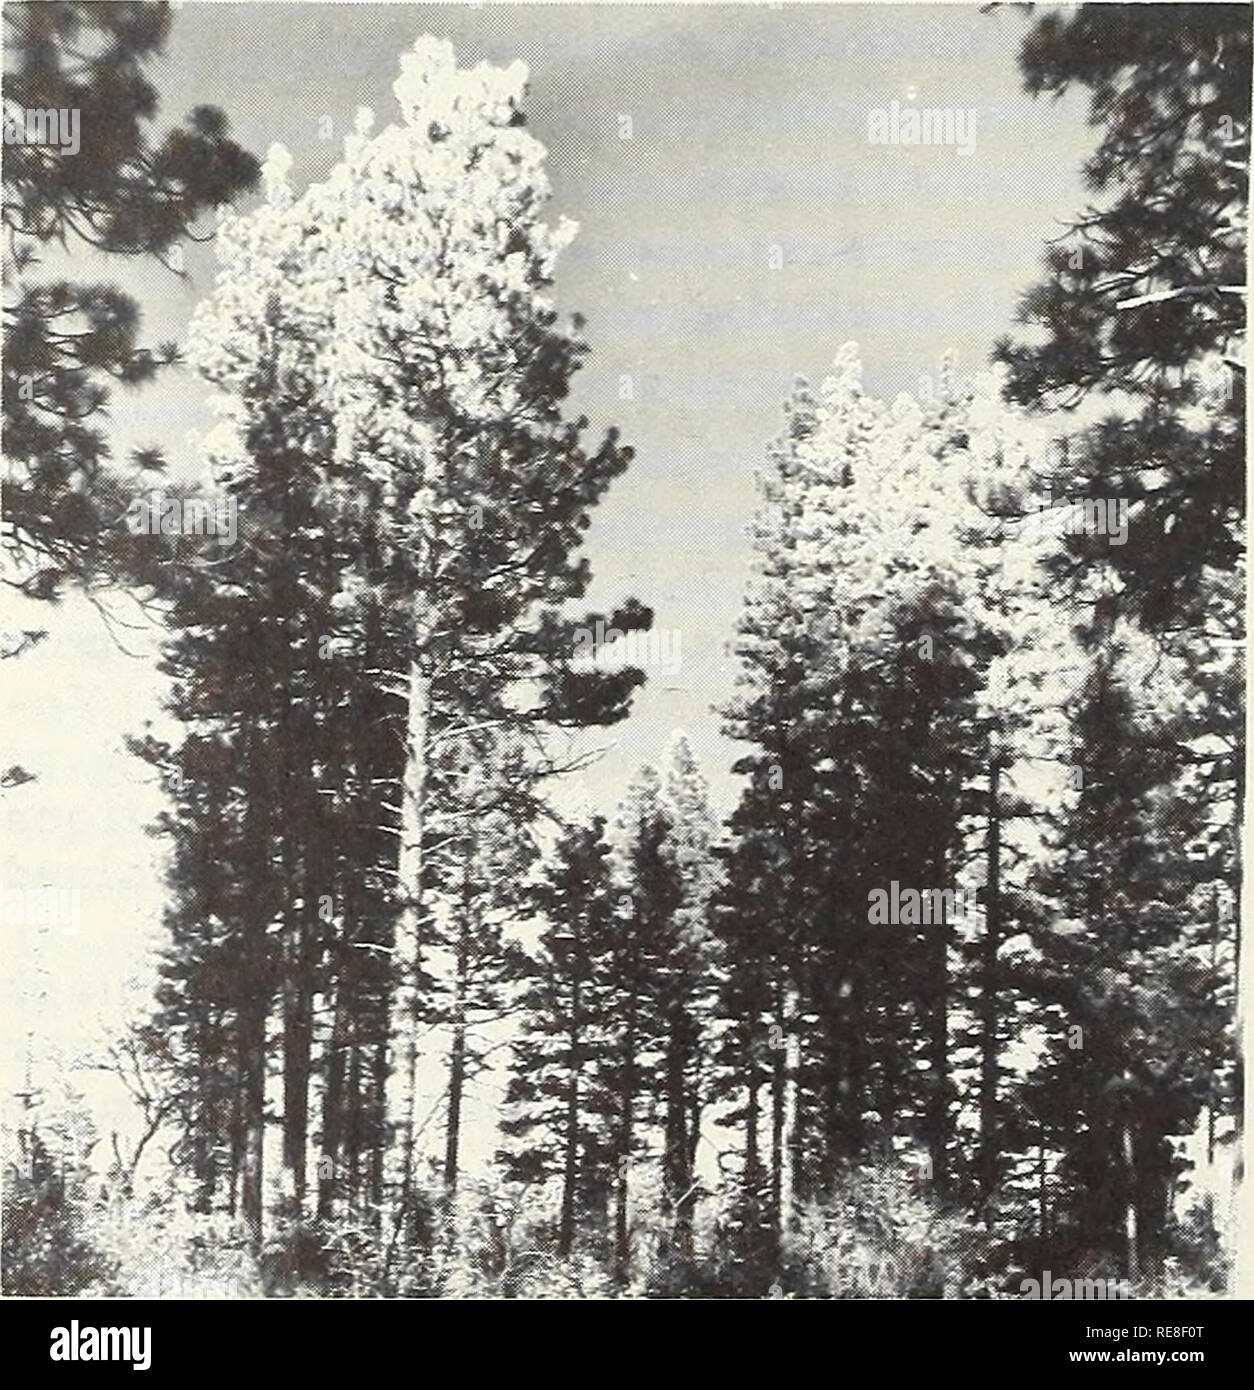 . Cooperative economic insect report. Insect pests Control United States Periodicals. - 1010 - also occurred on some 150,000 acres in parts of Shasta and Lassen Counties. In southern California, many Coulter pines were killed at several locations; in River- side County, groups of 90 or more trees were killed late in the season. In some places outbreaks were sparked by forest fires where beetle broods de- veloped in scorched trees; in others they developed in trees struck by lightning. Warm, dry weather during winter and early spring favored bettle broods in all areas. Mountain Pine Beetle Infe - Stock Image